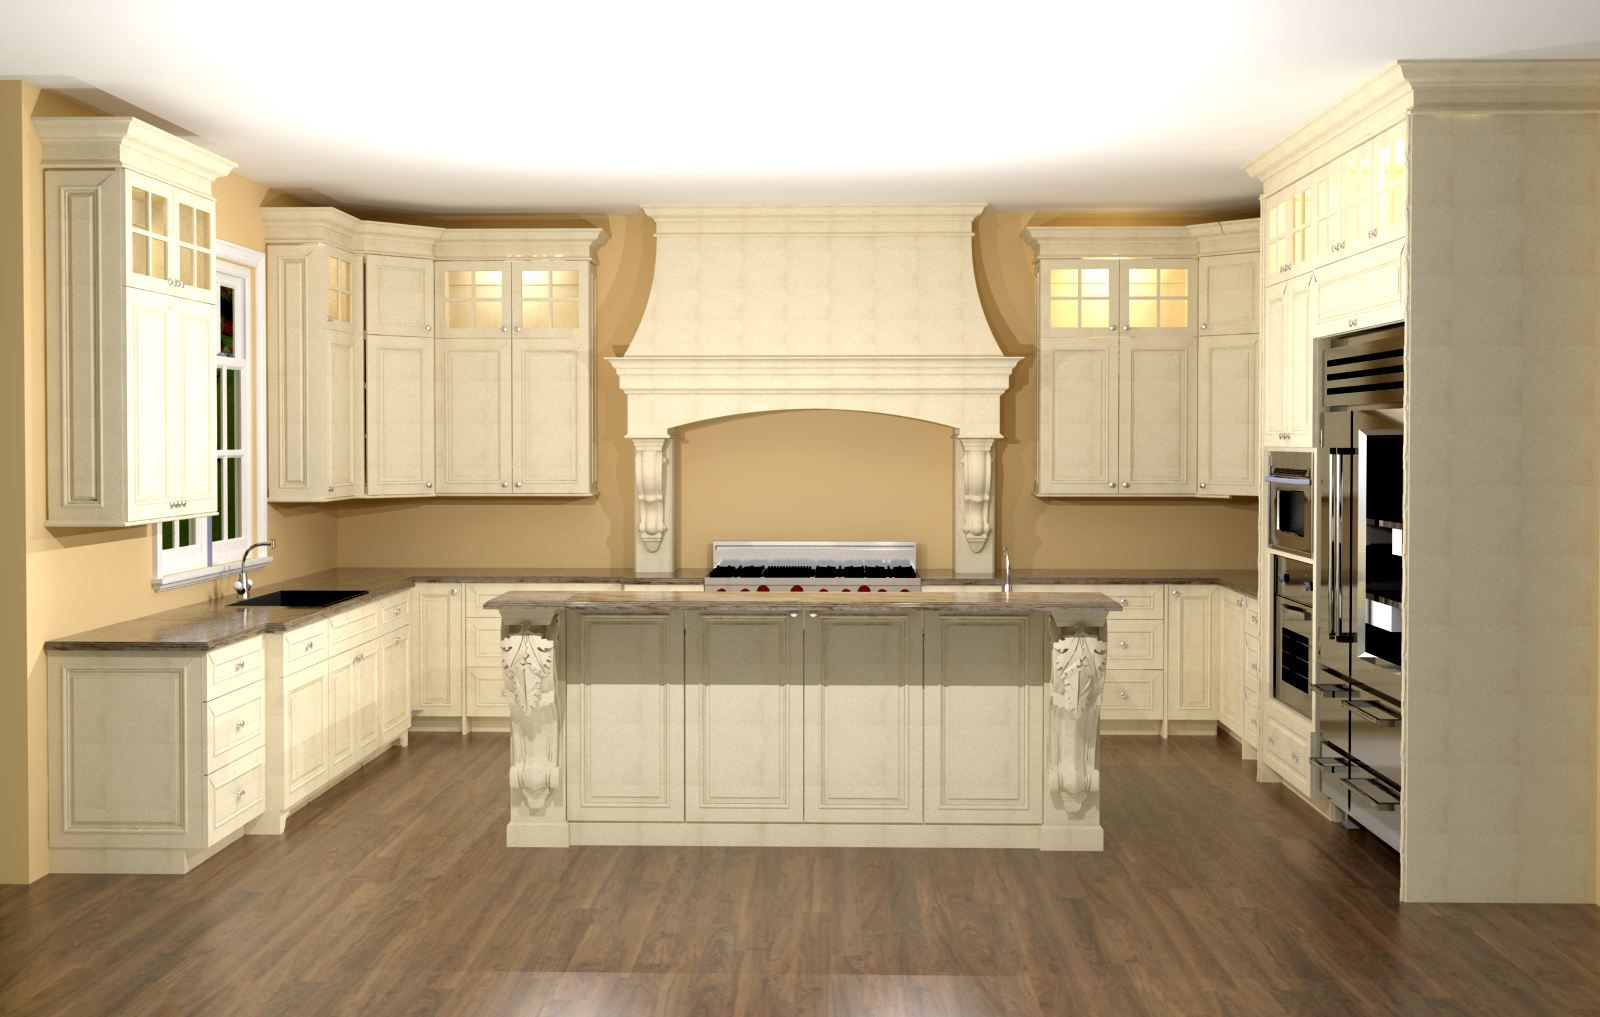 Ivory Kitchen Large Kitchen With Custom Hood Features Large Enkeboll Corbels On